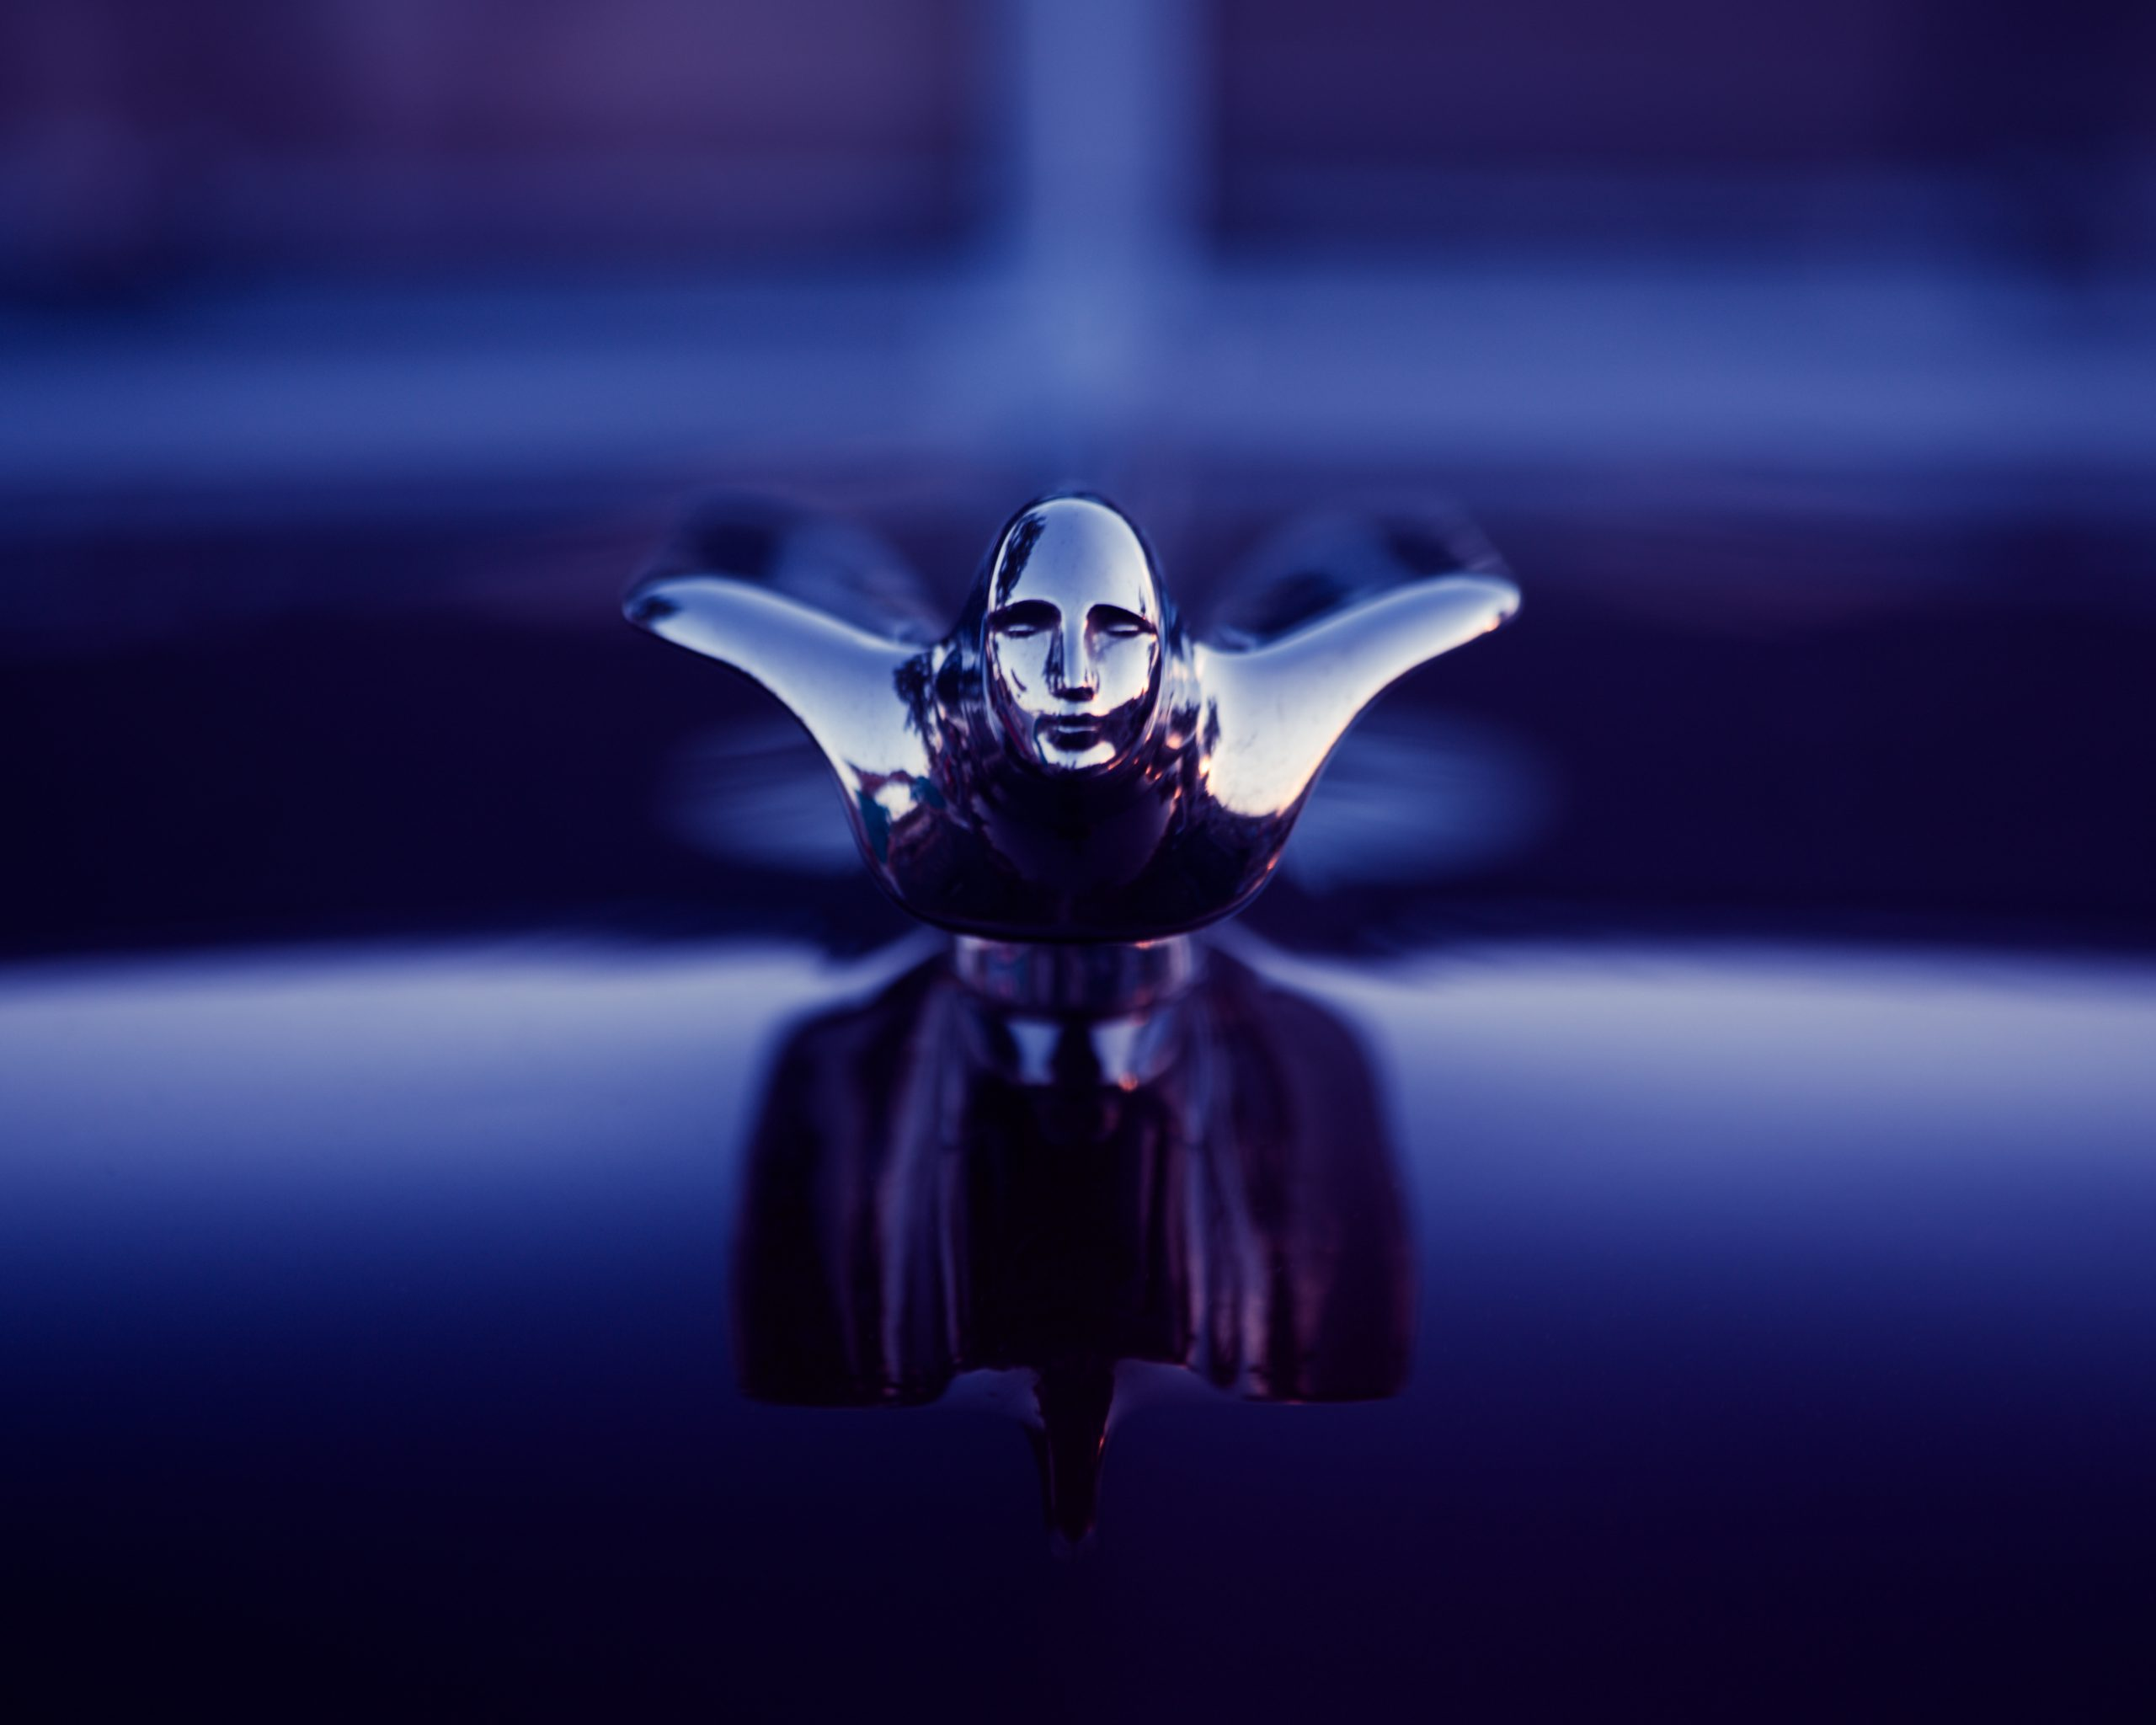 Buick V8 Hood Ornament ©Lauri Novak